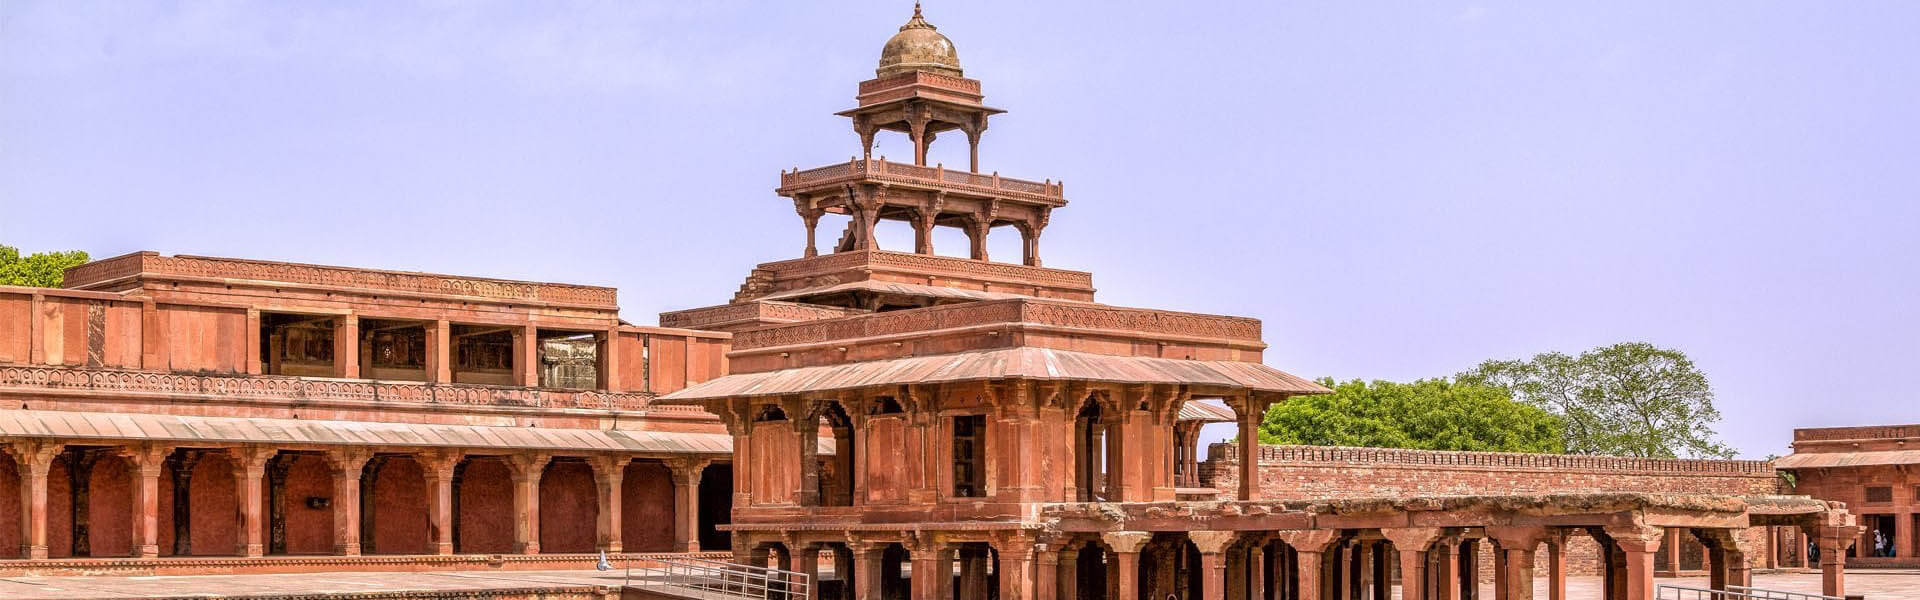 Agra & Fatehpur Sikri, india tour